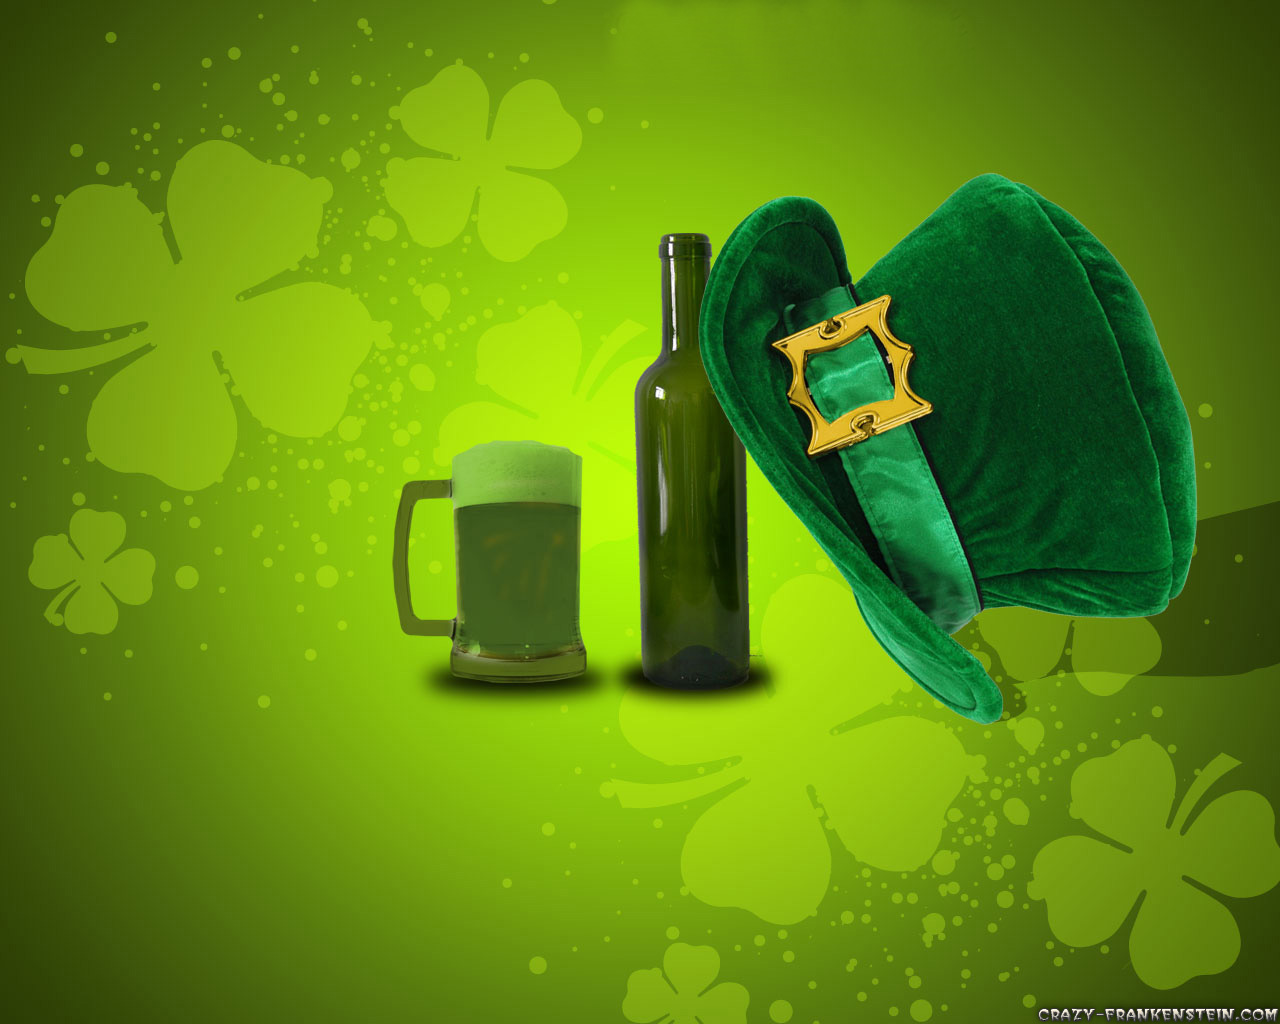 saint patrick's day Images in HD